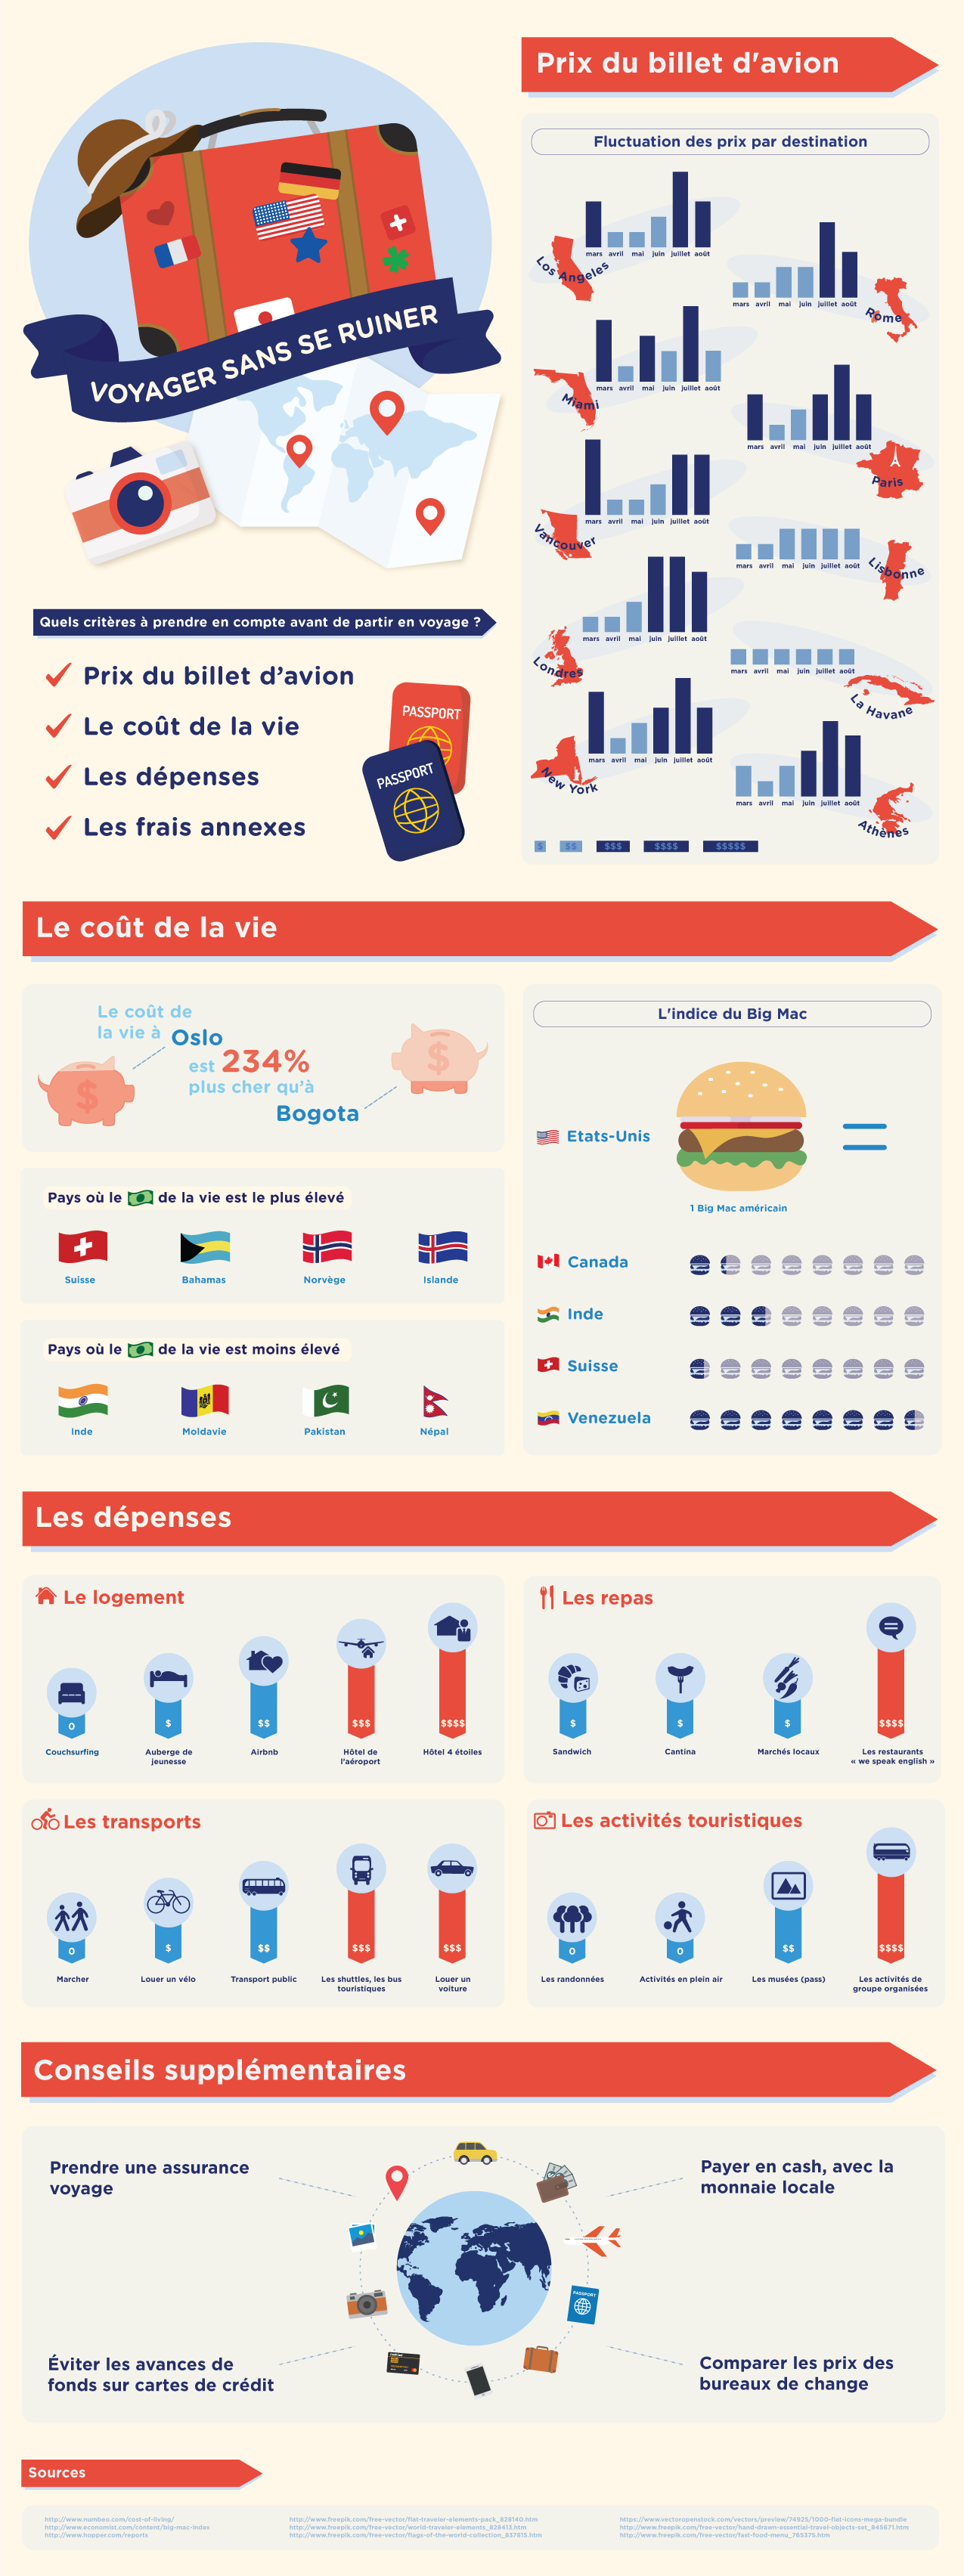 Voyager pas cher - Infographie